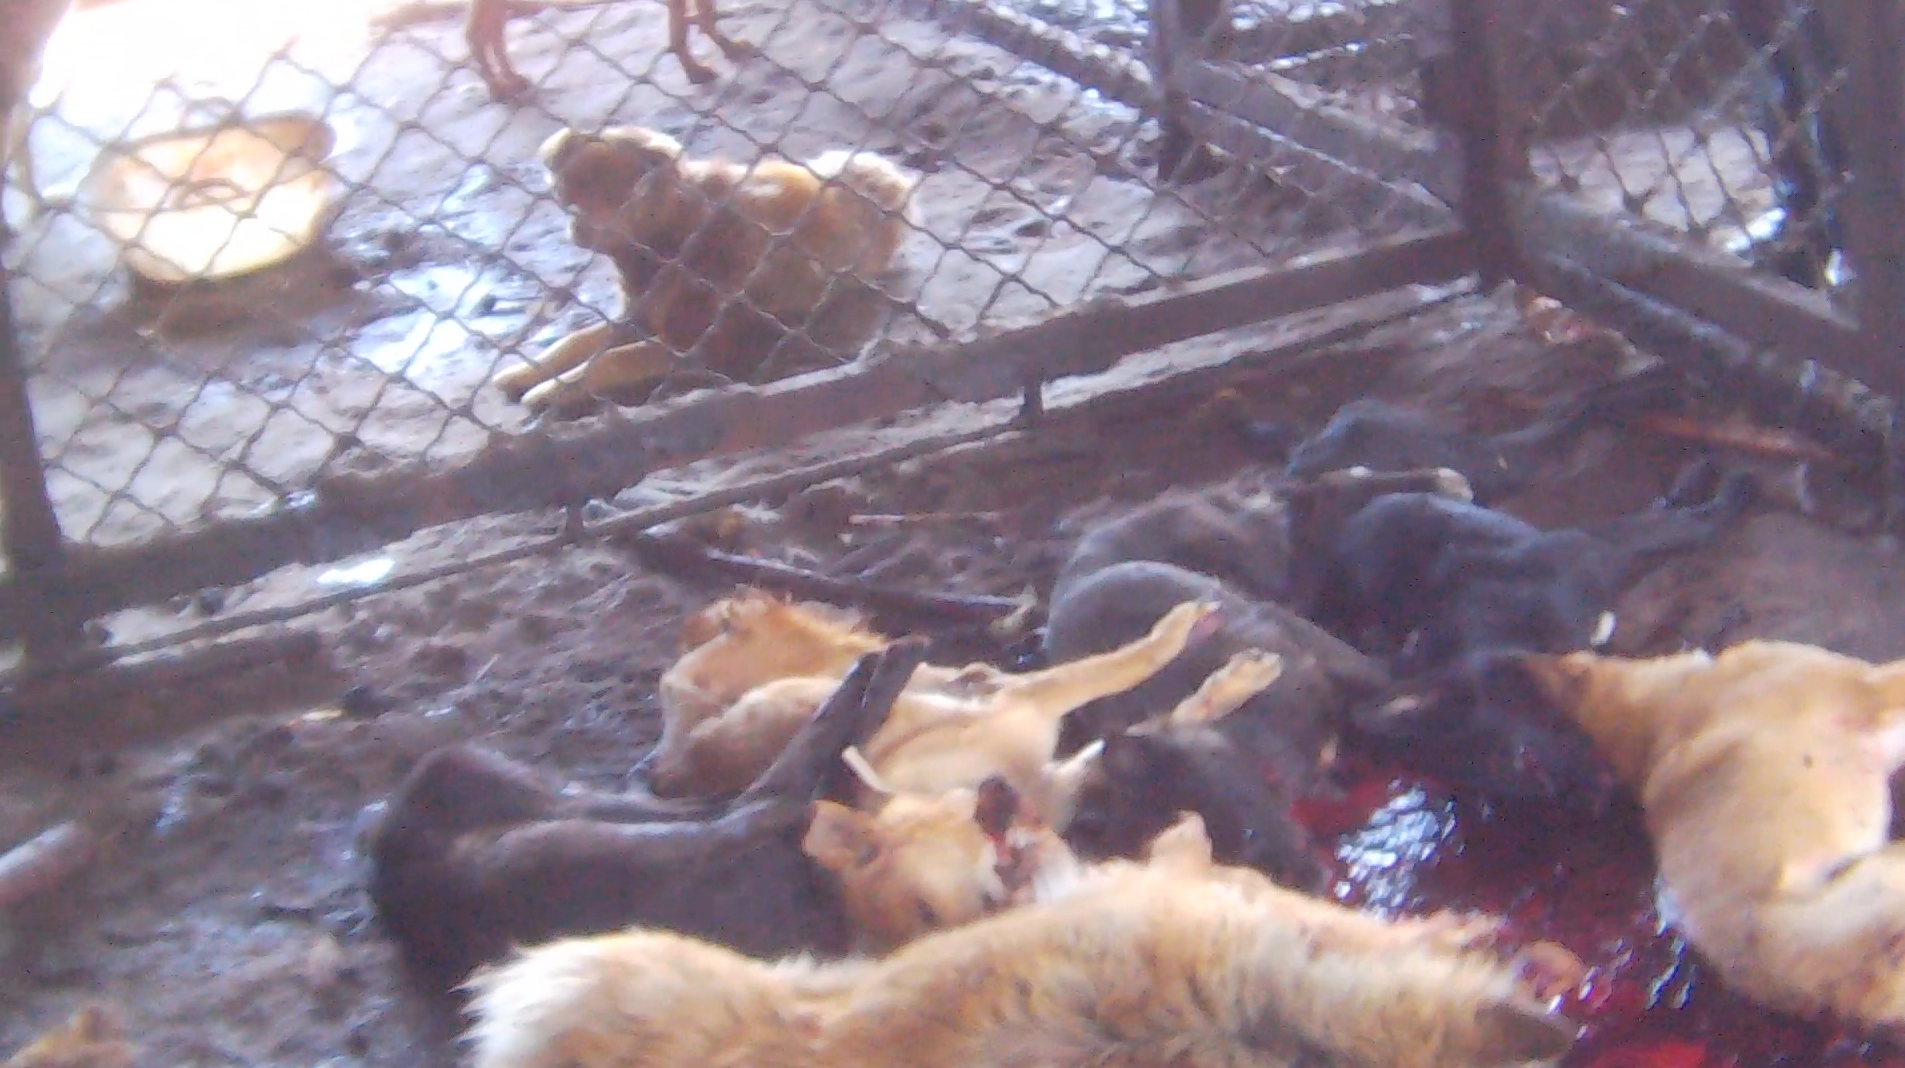 Stop Now to Stop Dog Meat - photo#8